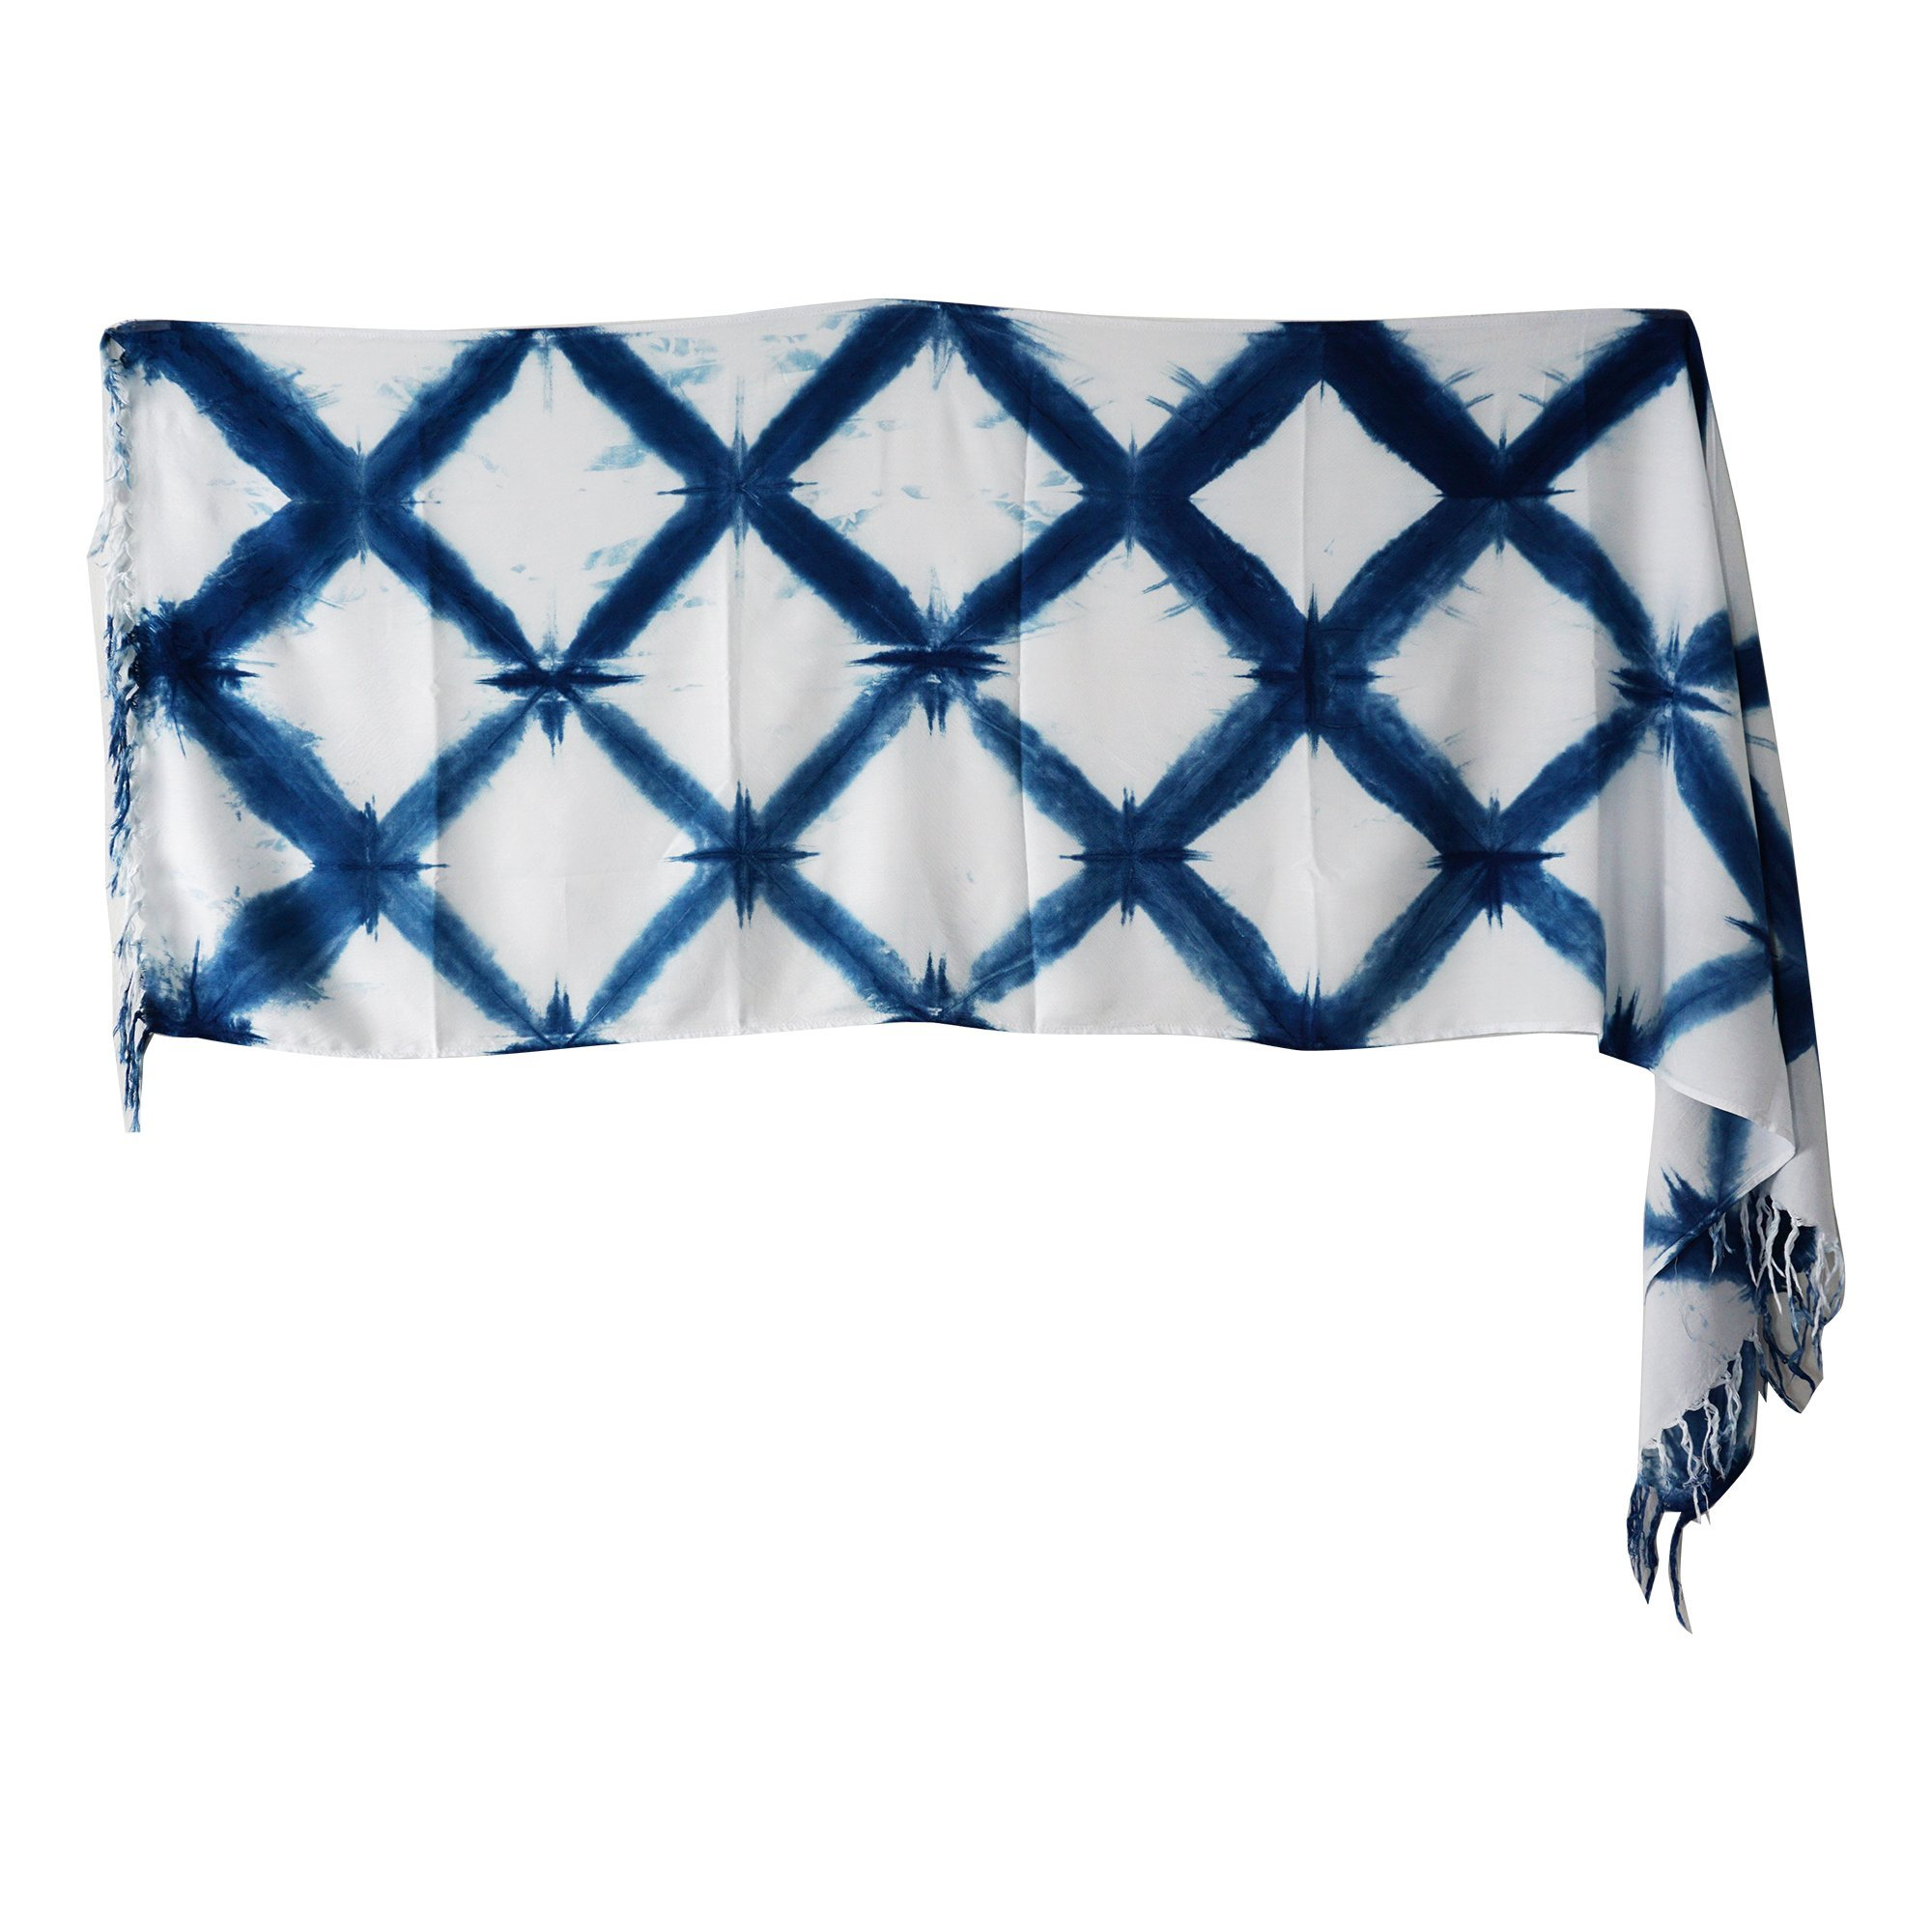 Amaret Thailand - Scarf For Women Indigo Tie Dye, Summer Season Tropical Style, Product From Northern Of Thailand [Hand Made]